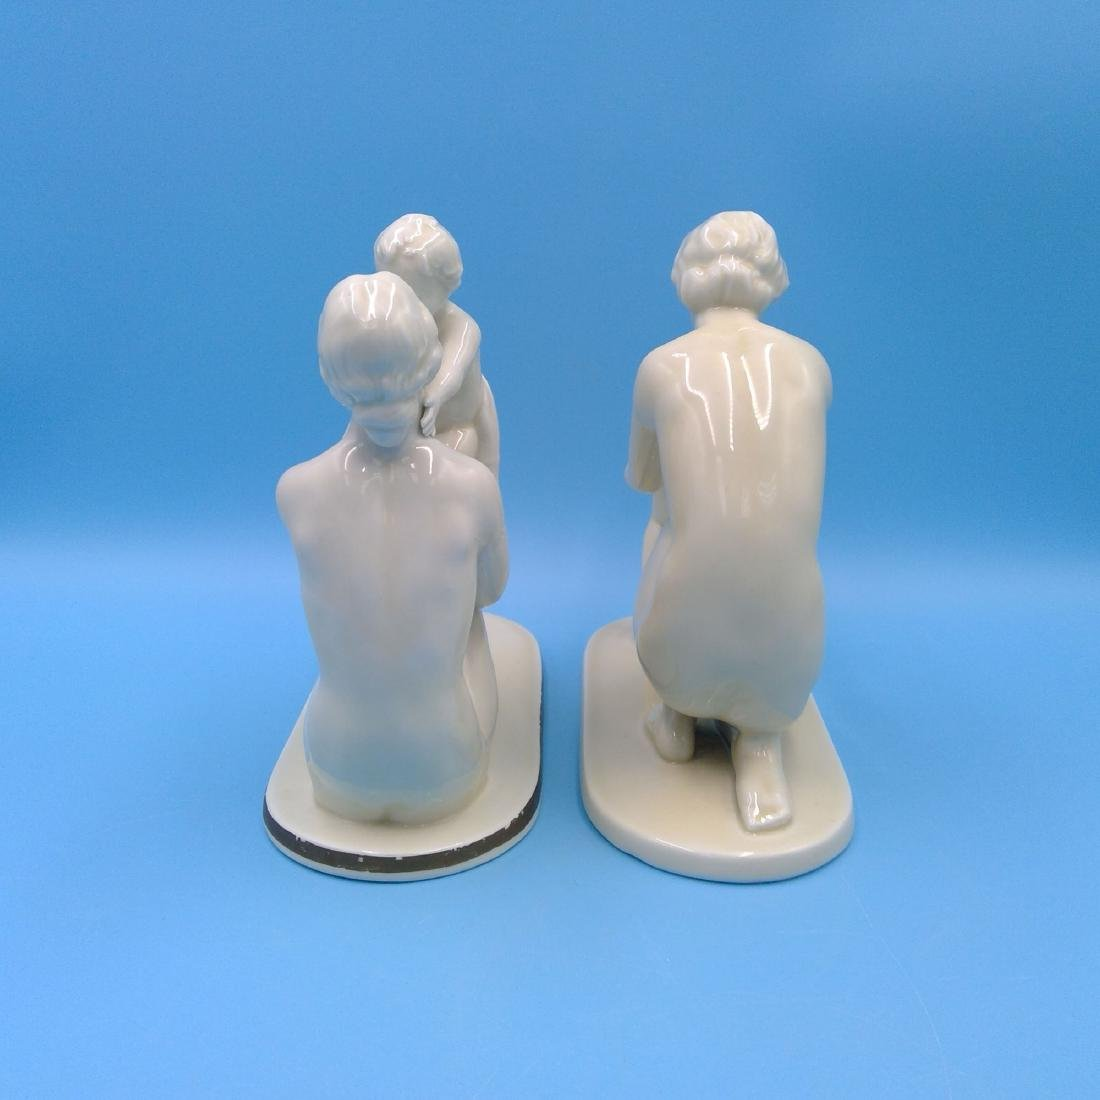 GROUP OF 2 NEUTETTAU PORCELAIN FIGURINES MOTHER - 2